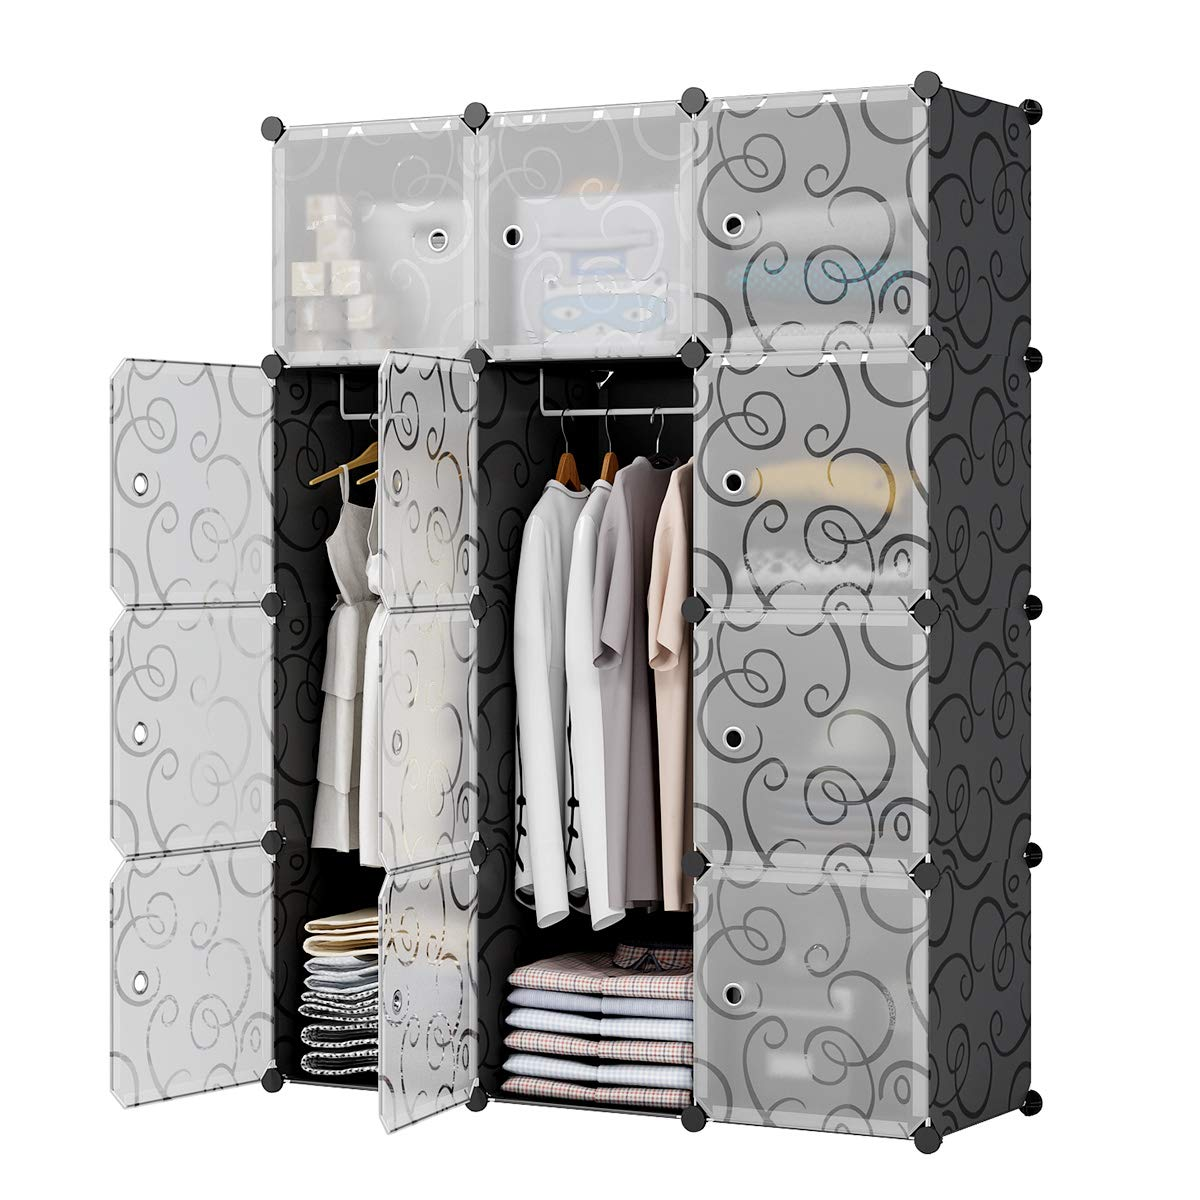 KOUSI Bedroom Armoire Portable Closet Armoire Clothes Armoire Wardrobe Armoire Storage Armoire Organizer with Doors, Capacious & Sturdy, Black, 6 Cubes+2 Hanging Sections